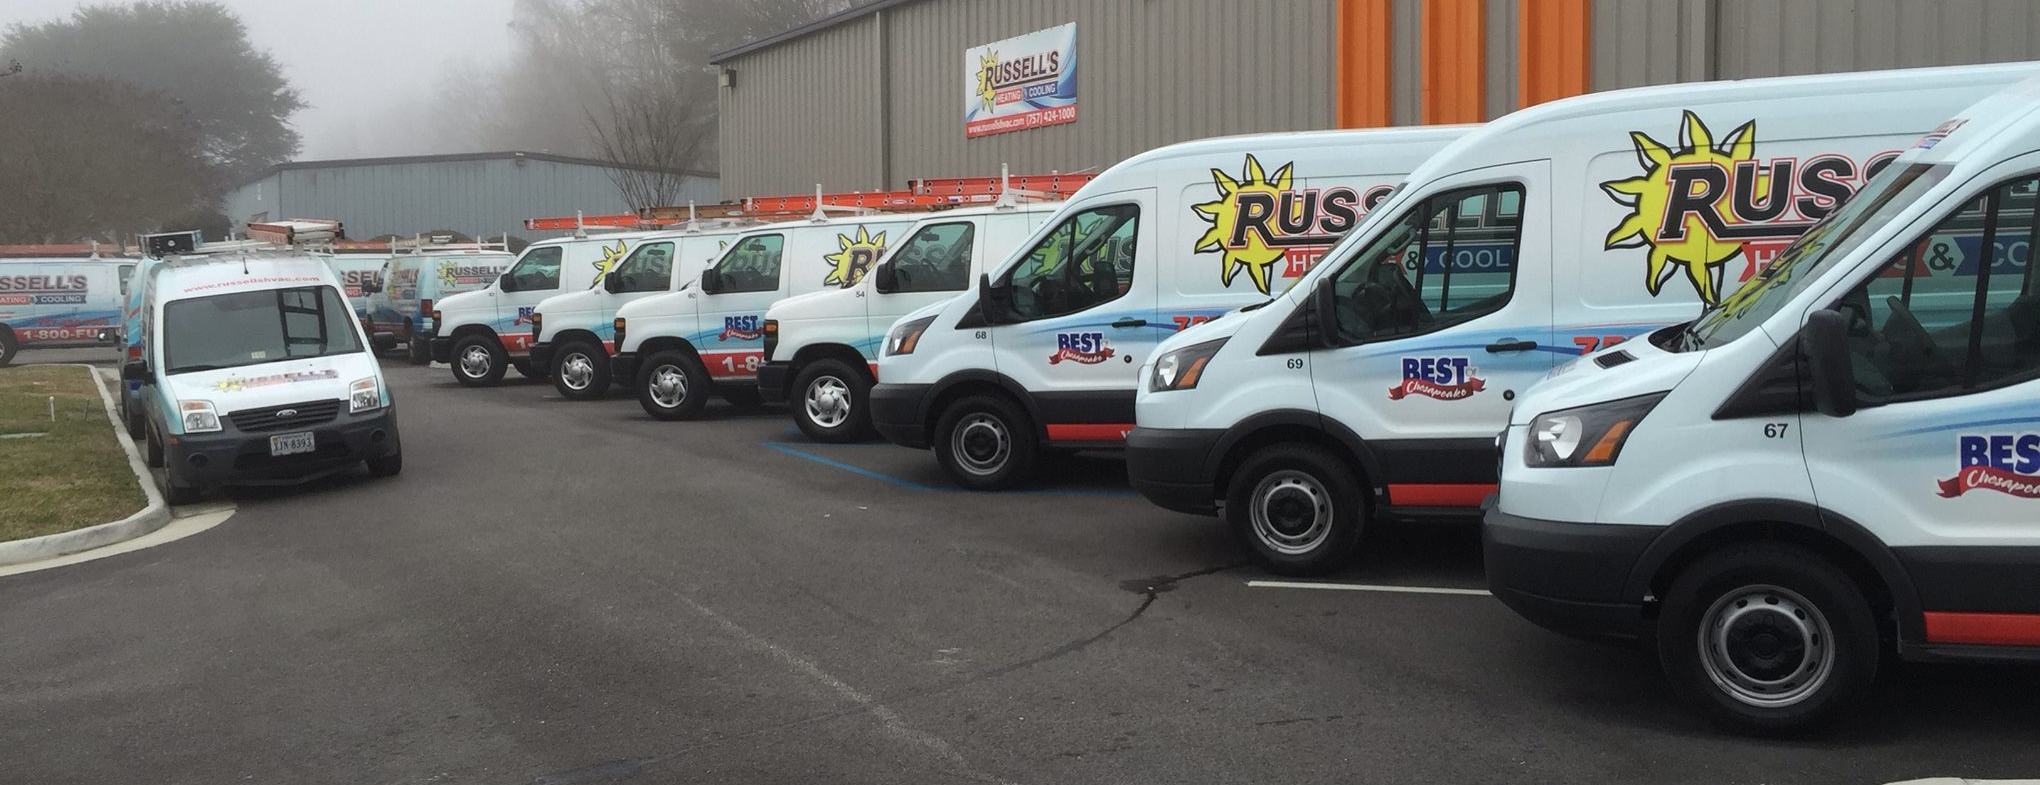 Russell's Heating & Cooling of Chesapeake, VA service fleet. Service today or it is free.